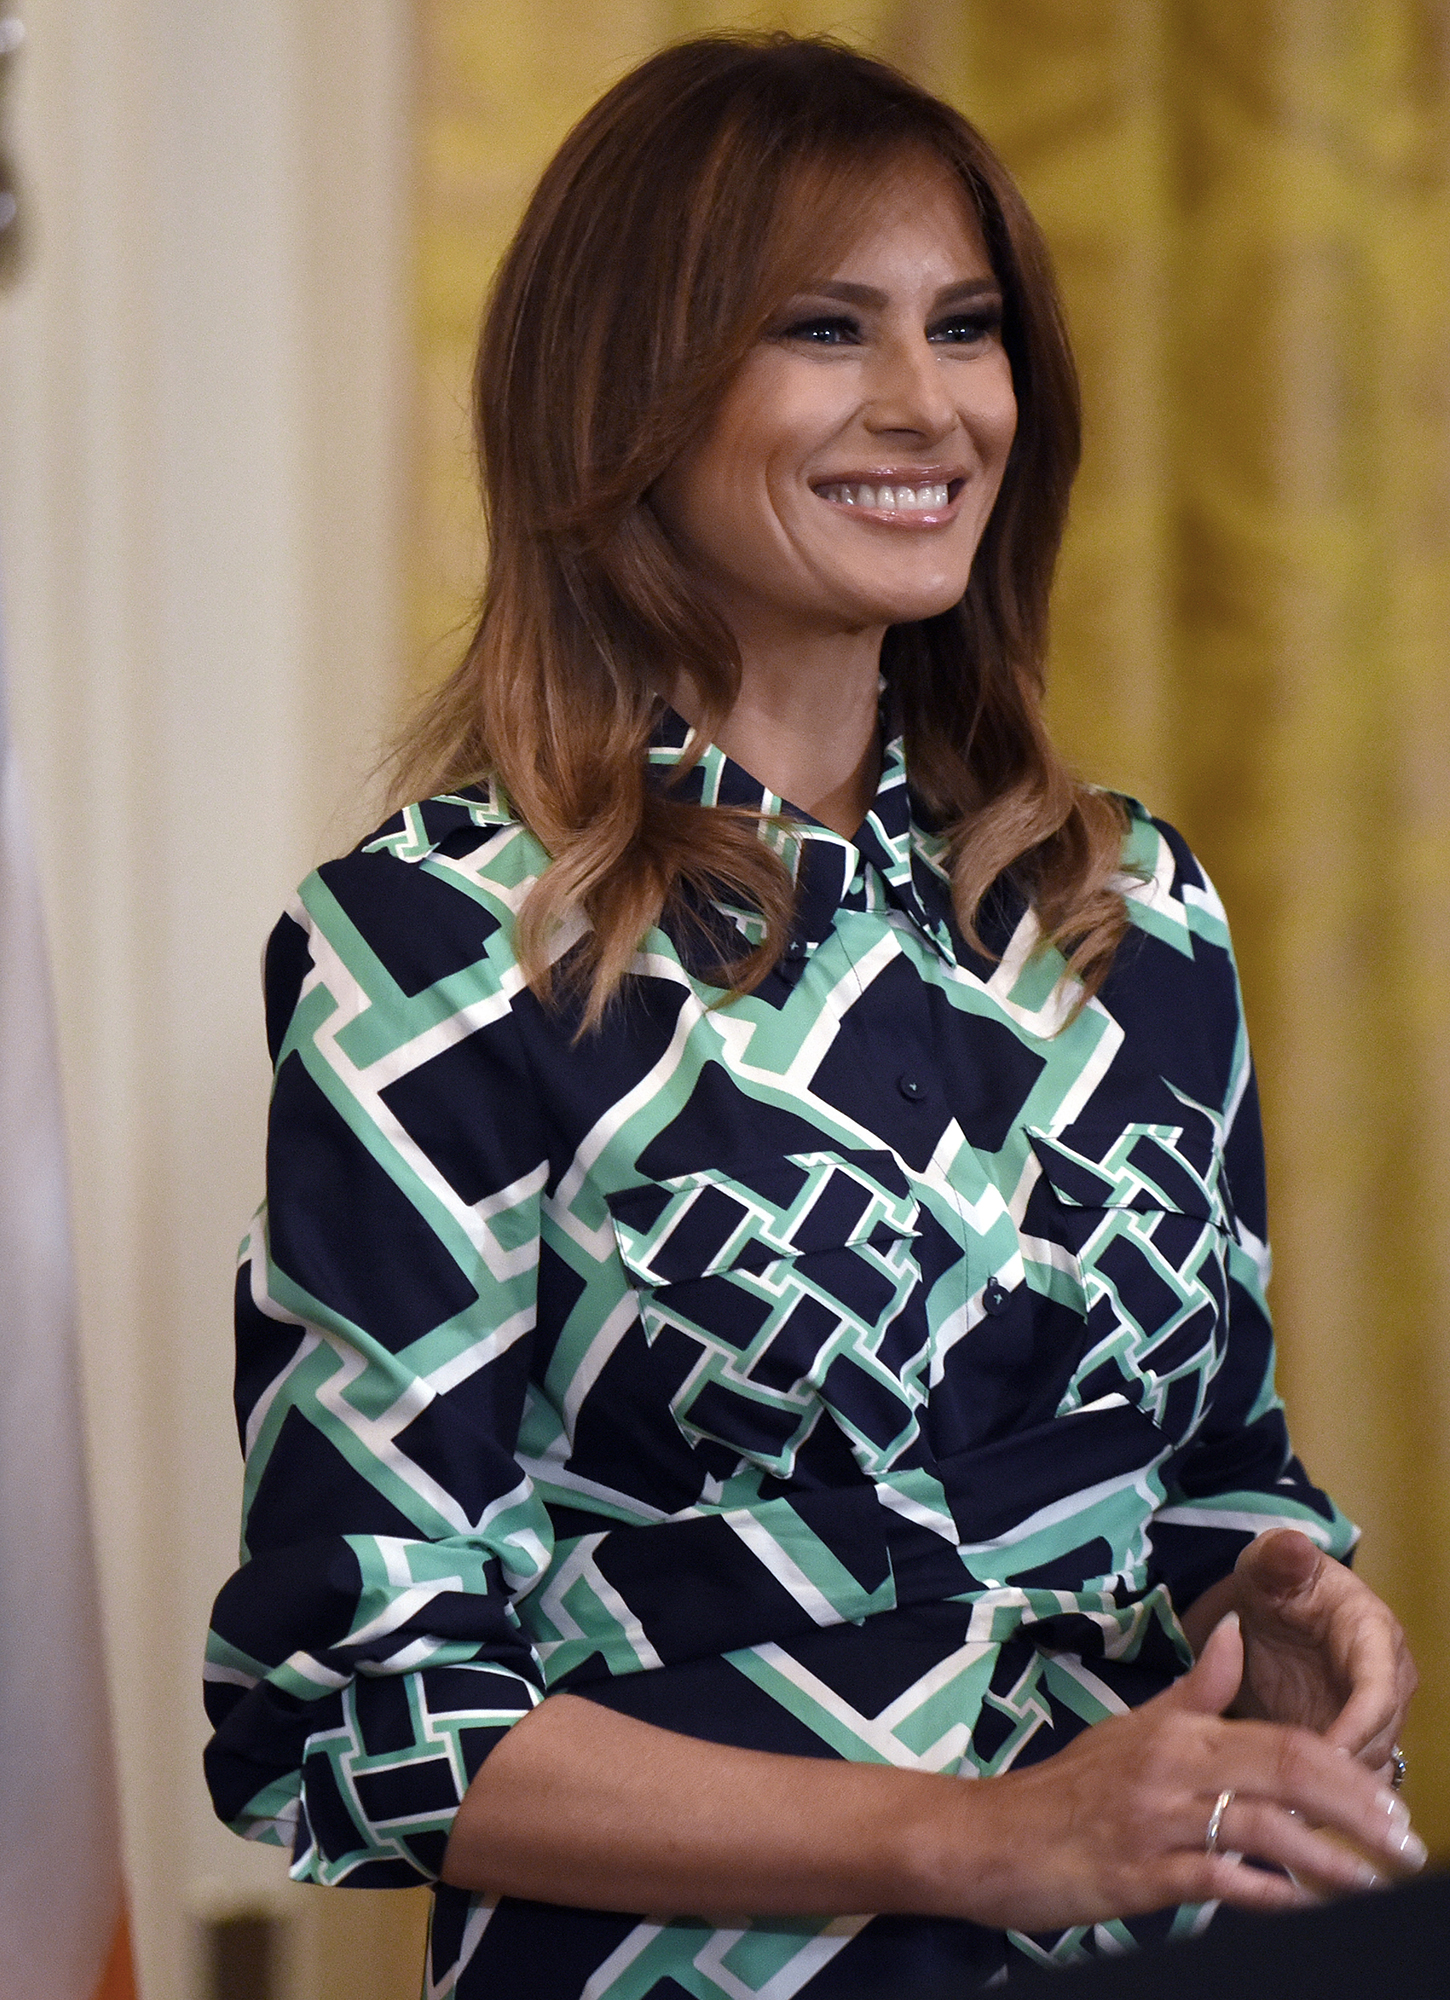 Melania Trump's Most Stylish Moments Since Taking on the FLOTUS Title - The First Lady looked festive in a green-accented Diane von Furstenberg shirt dress and matching Christian Loubtouin heels at a pre-St. Patrick's Day celebration at the White House.